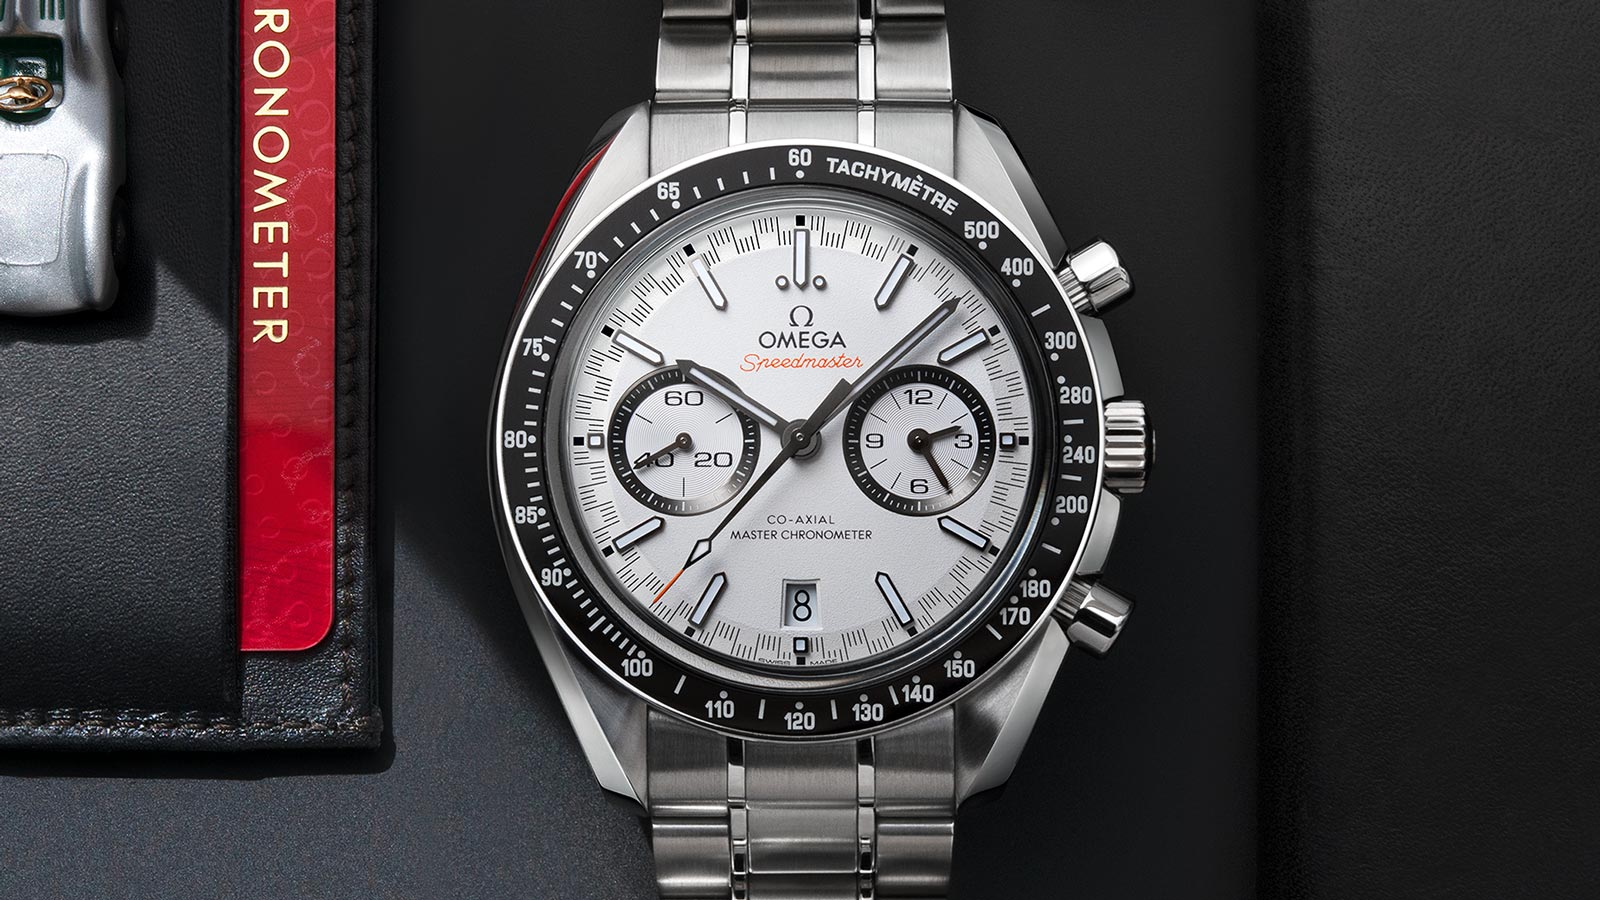 Speedmaster Racing Omega Co-Axial Master Chronometer Chronograph 44.25 mm Watch - 329.30.44.51.04.001